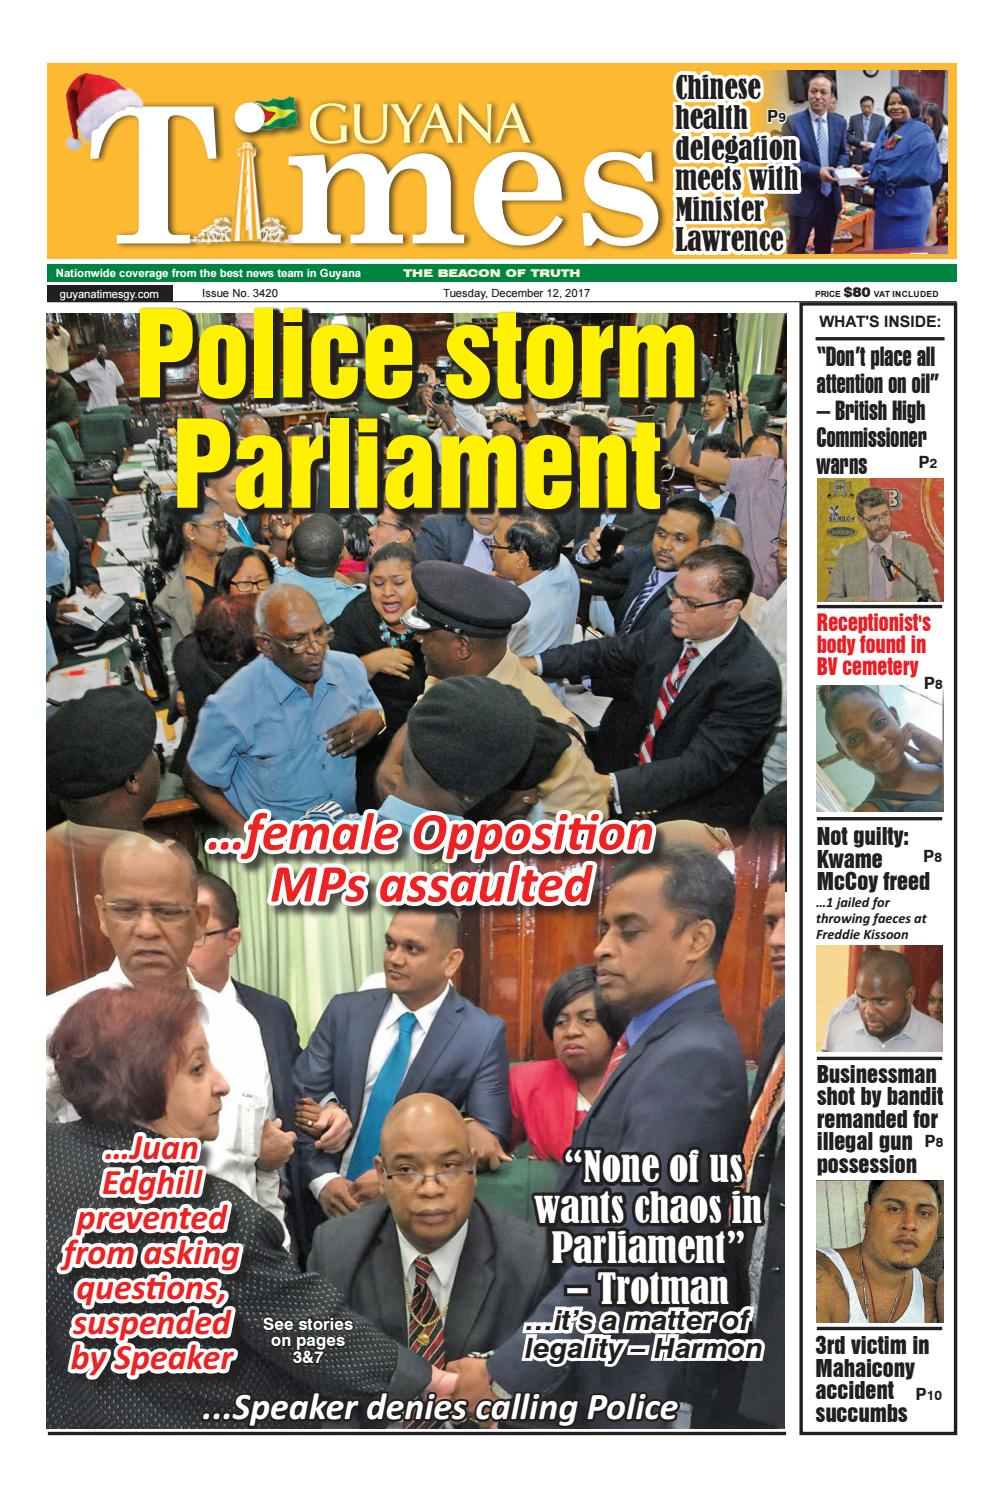 Guyana times daily december 12, 2017 by Gytimes - issuu